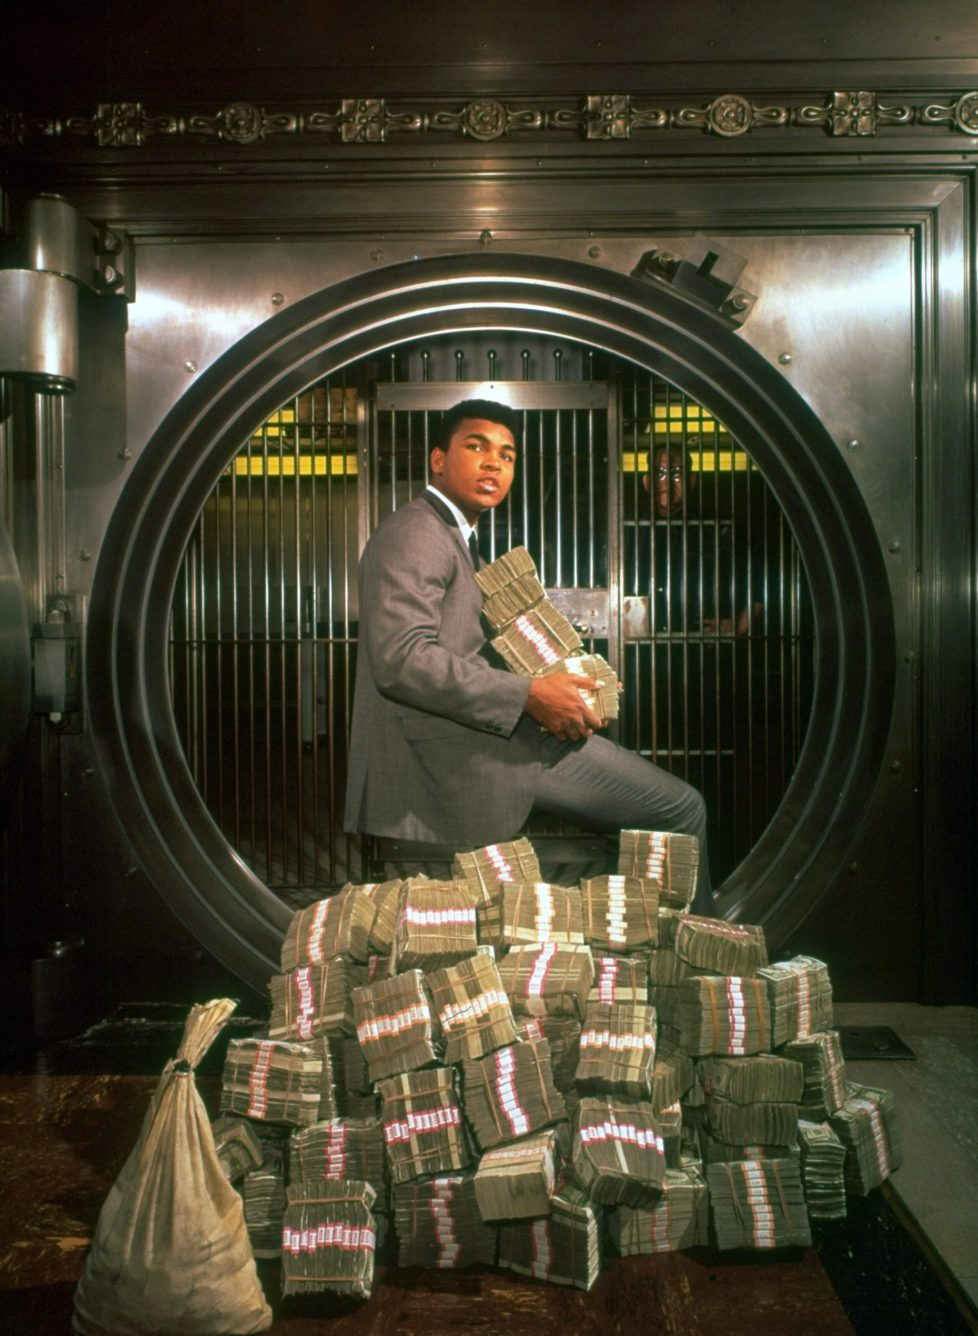 UNITED STATES - DECEMBER 13: Boxing: Casual portrait of heavyweight Cassius Clay with money at Bank of America, Los Angeles, CA 12/13/1963 (Photo by Richard Meek/Sports Illustrated/Getty Images) (SetNumber: X9712)